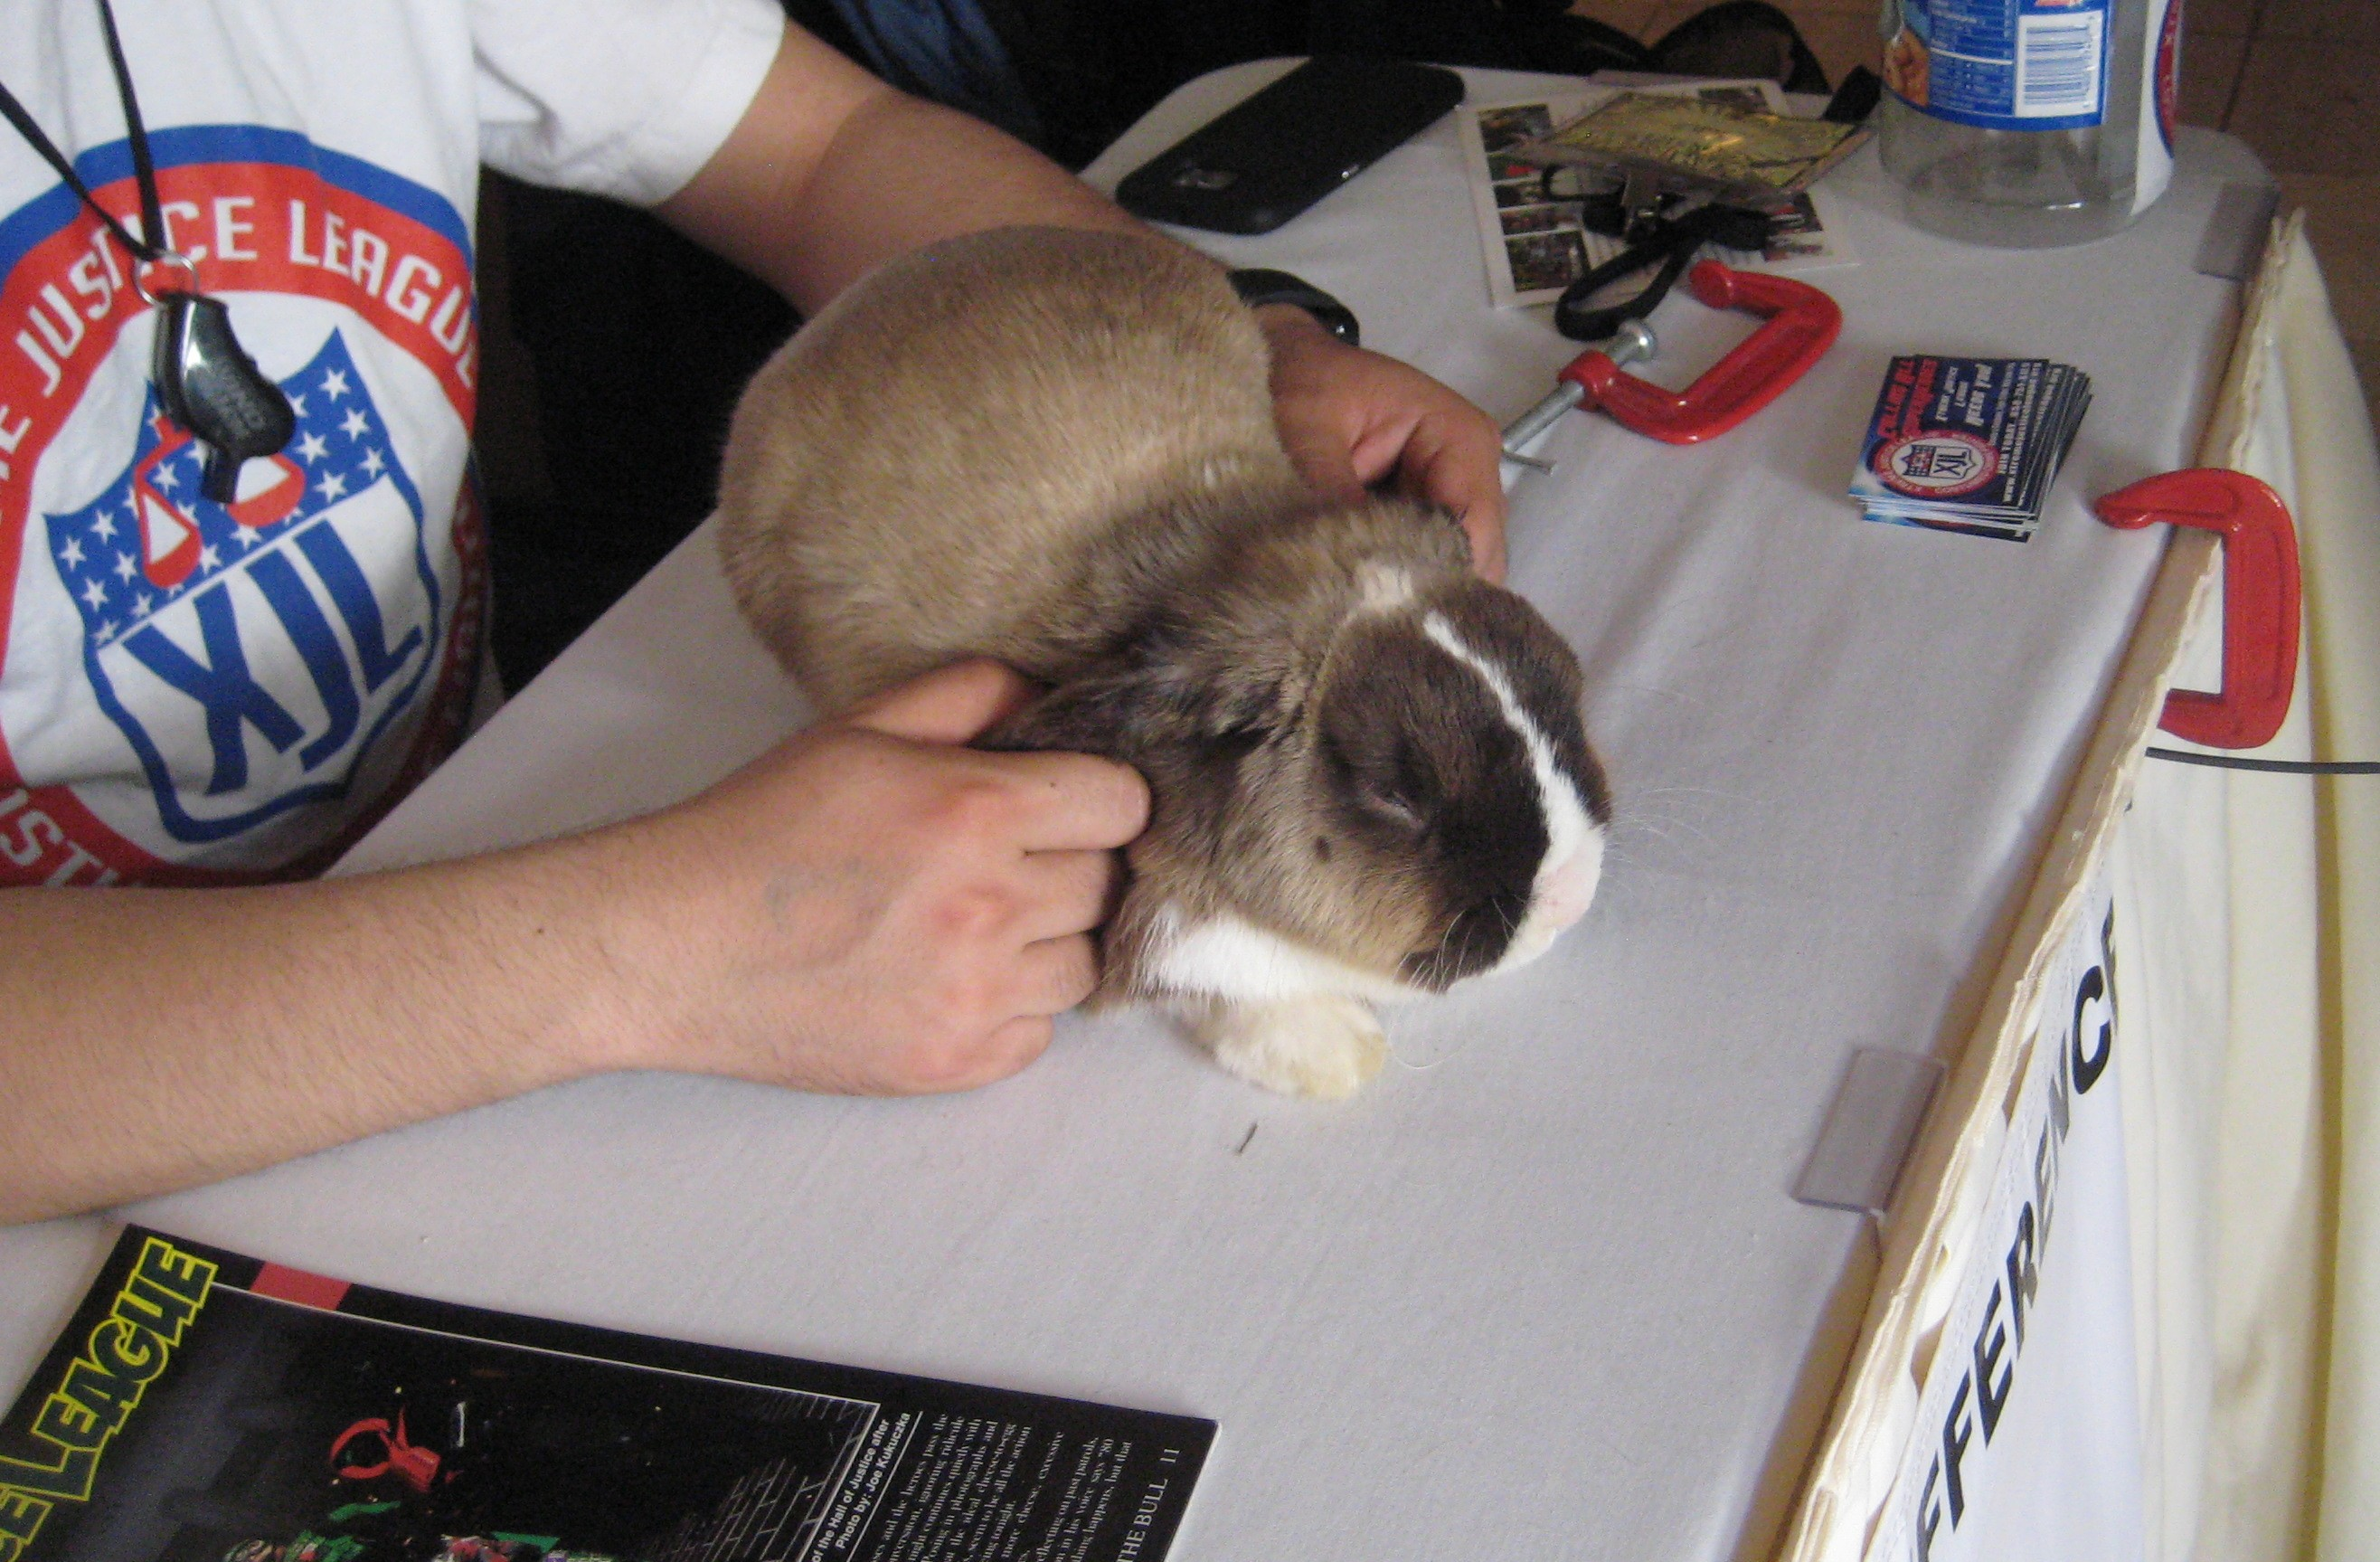 rabbit at Xtreme Justice League table